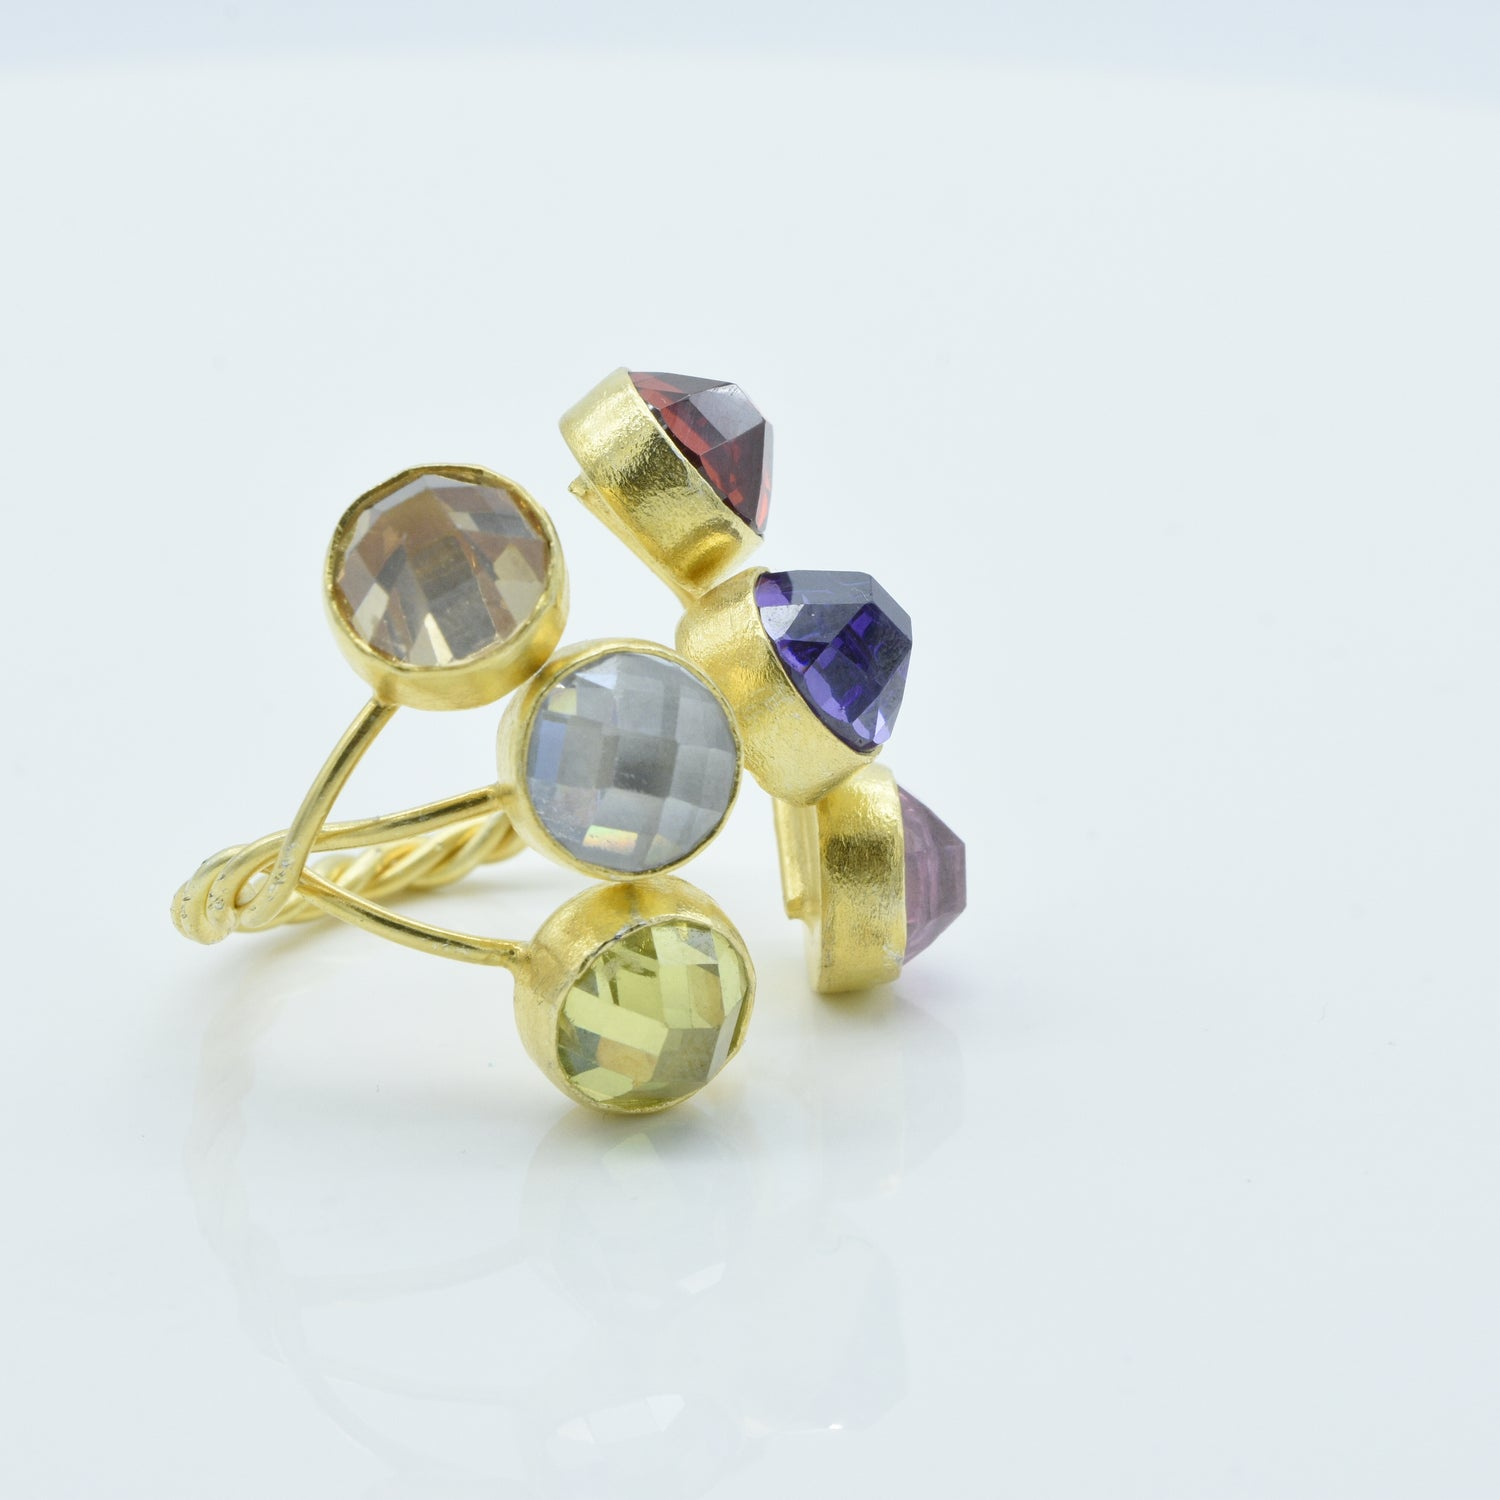 Aylas Crystal Quartz adjustable ring - 21ct Gold plated 925 silver - Handmade in Ottoman Style by Artisan